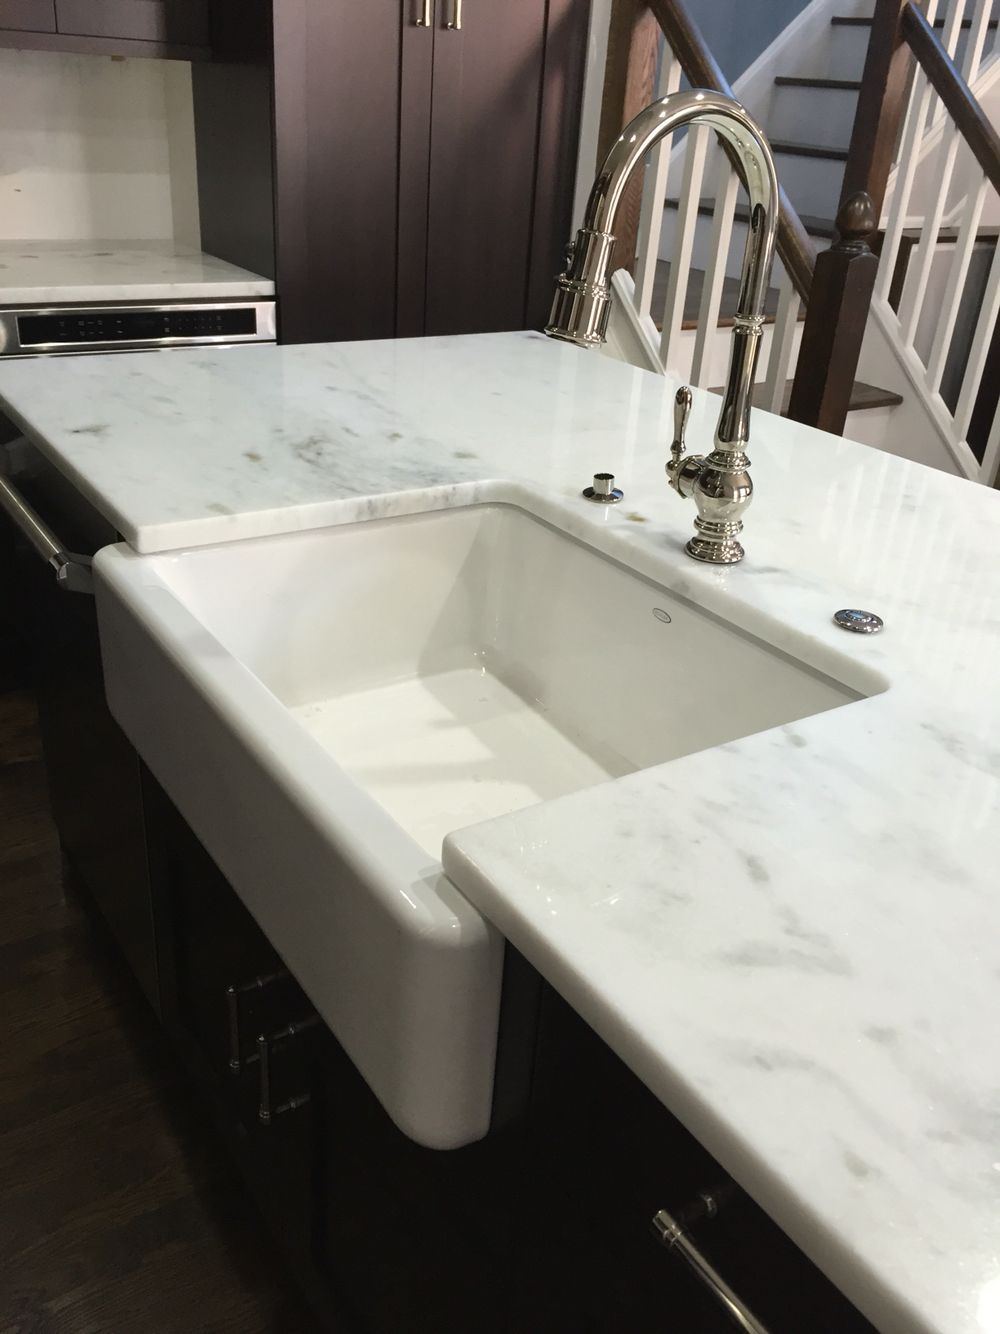 Kohler Farmhouse Sink With Lorena White Quartzite Careful On The